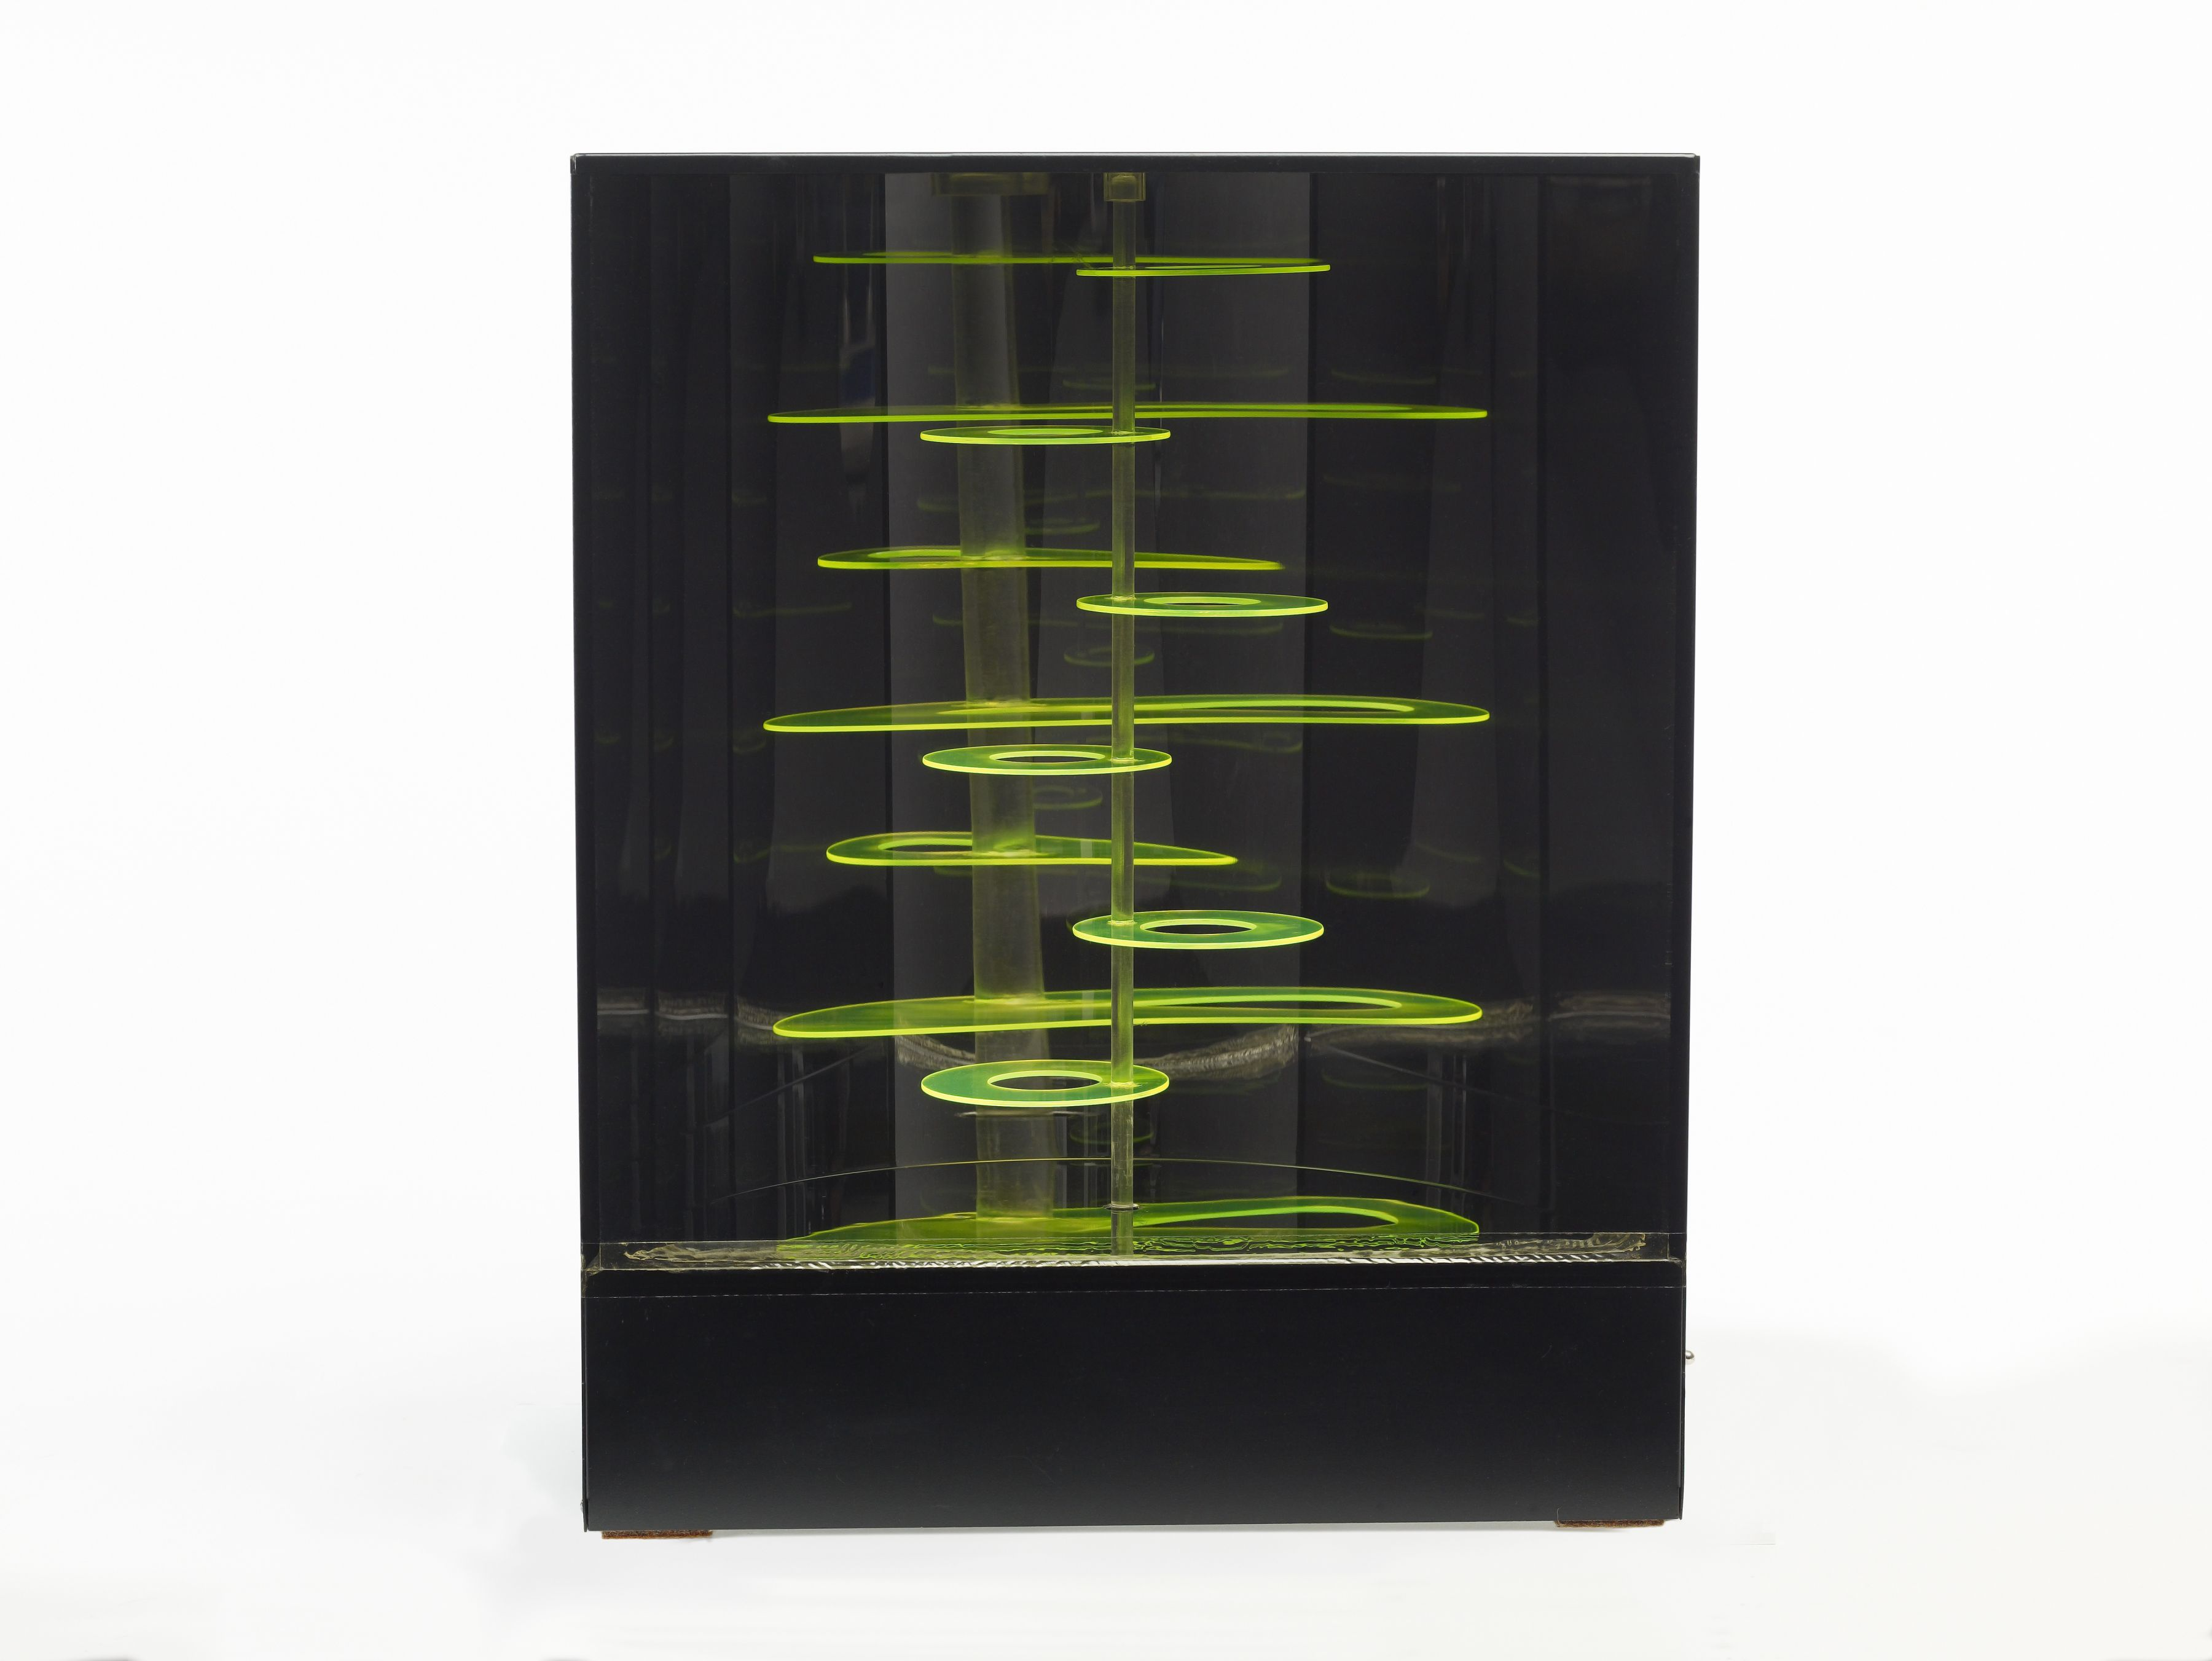 Martha Boto, Deplacements Optiques, 1968. Metal, Plexiglas, electric motor, 18 7/8 in. x 14 15/16 in. x 8 1/2 in.